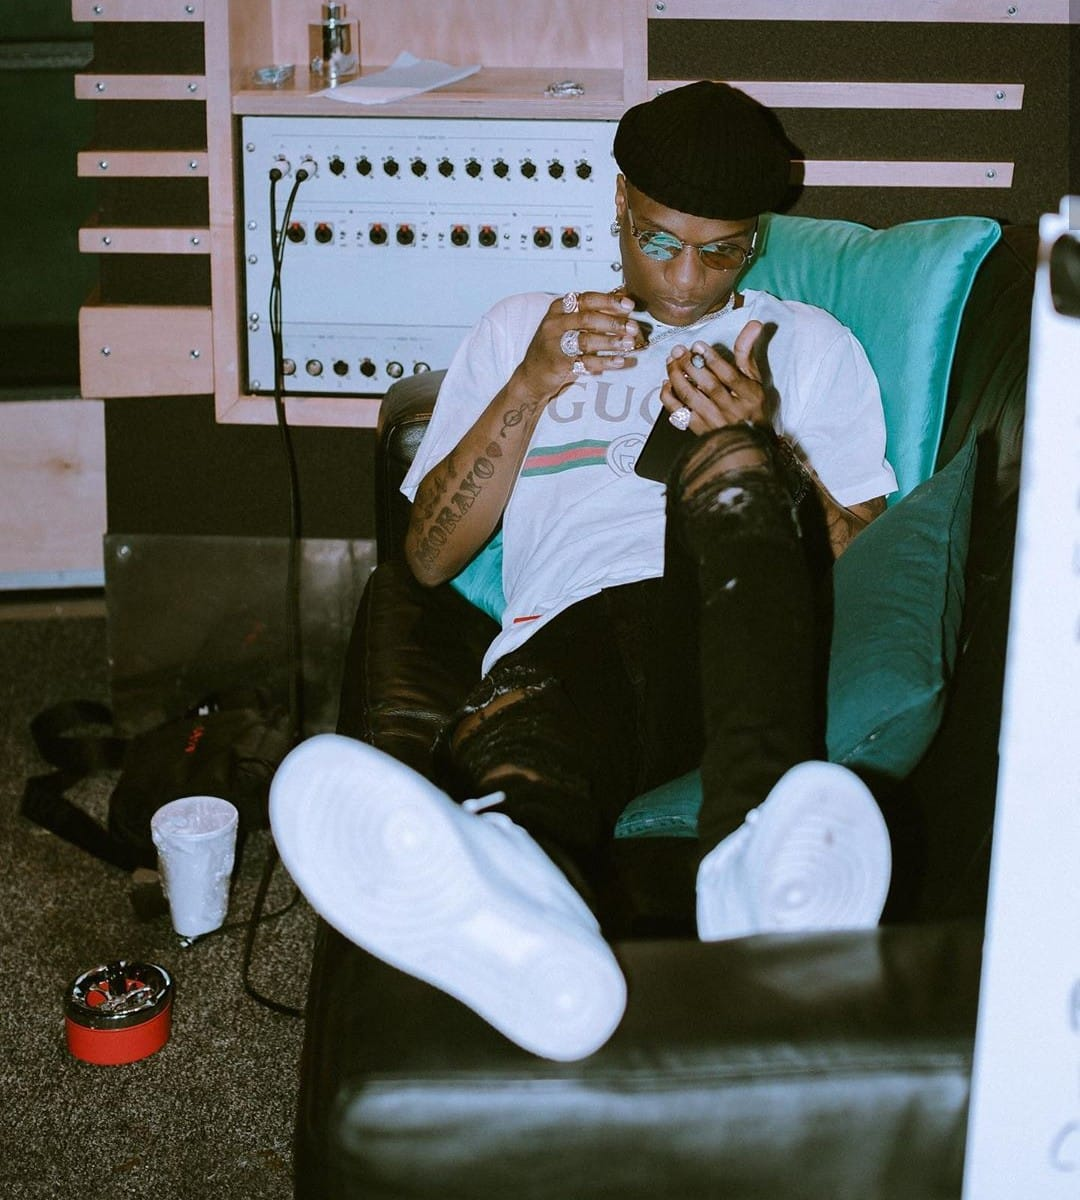 I haven't seen any pastor go into isolation centre to heal COVID-19 patient - Wizkid